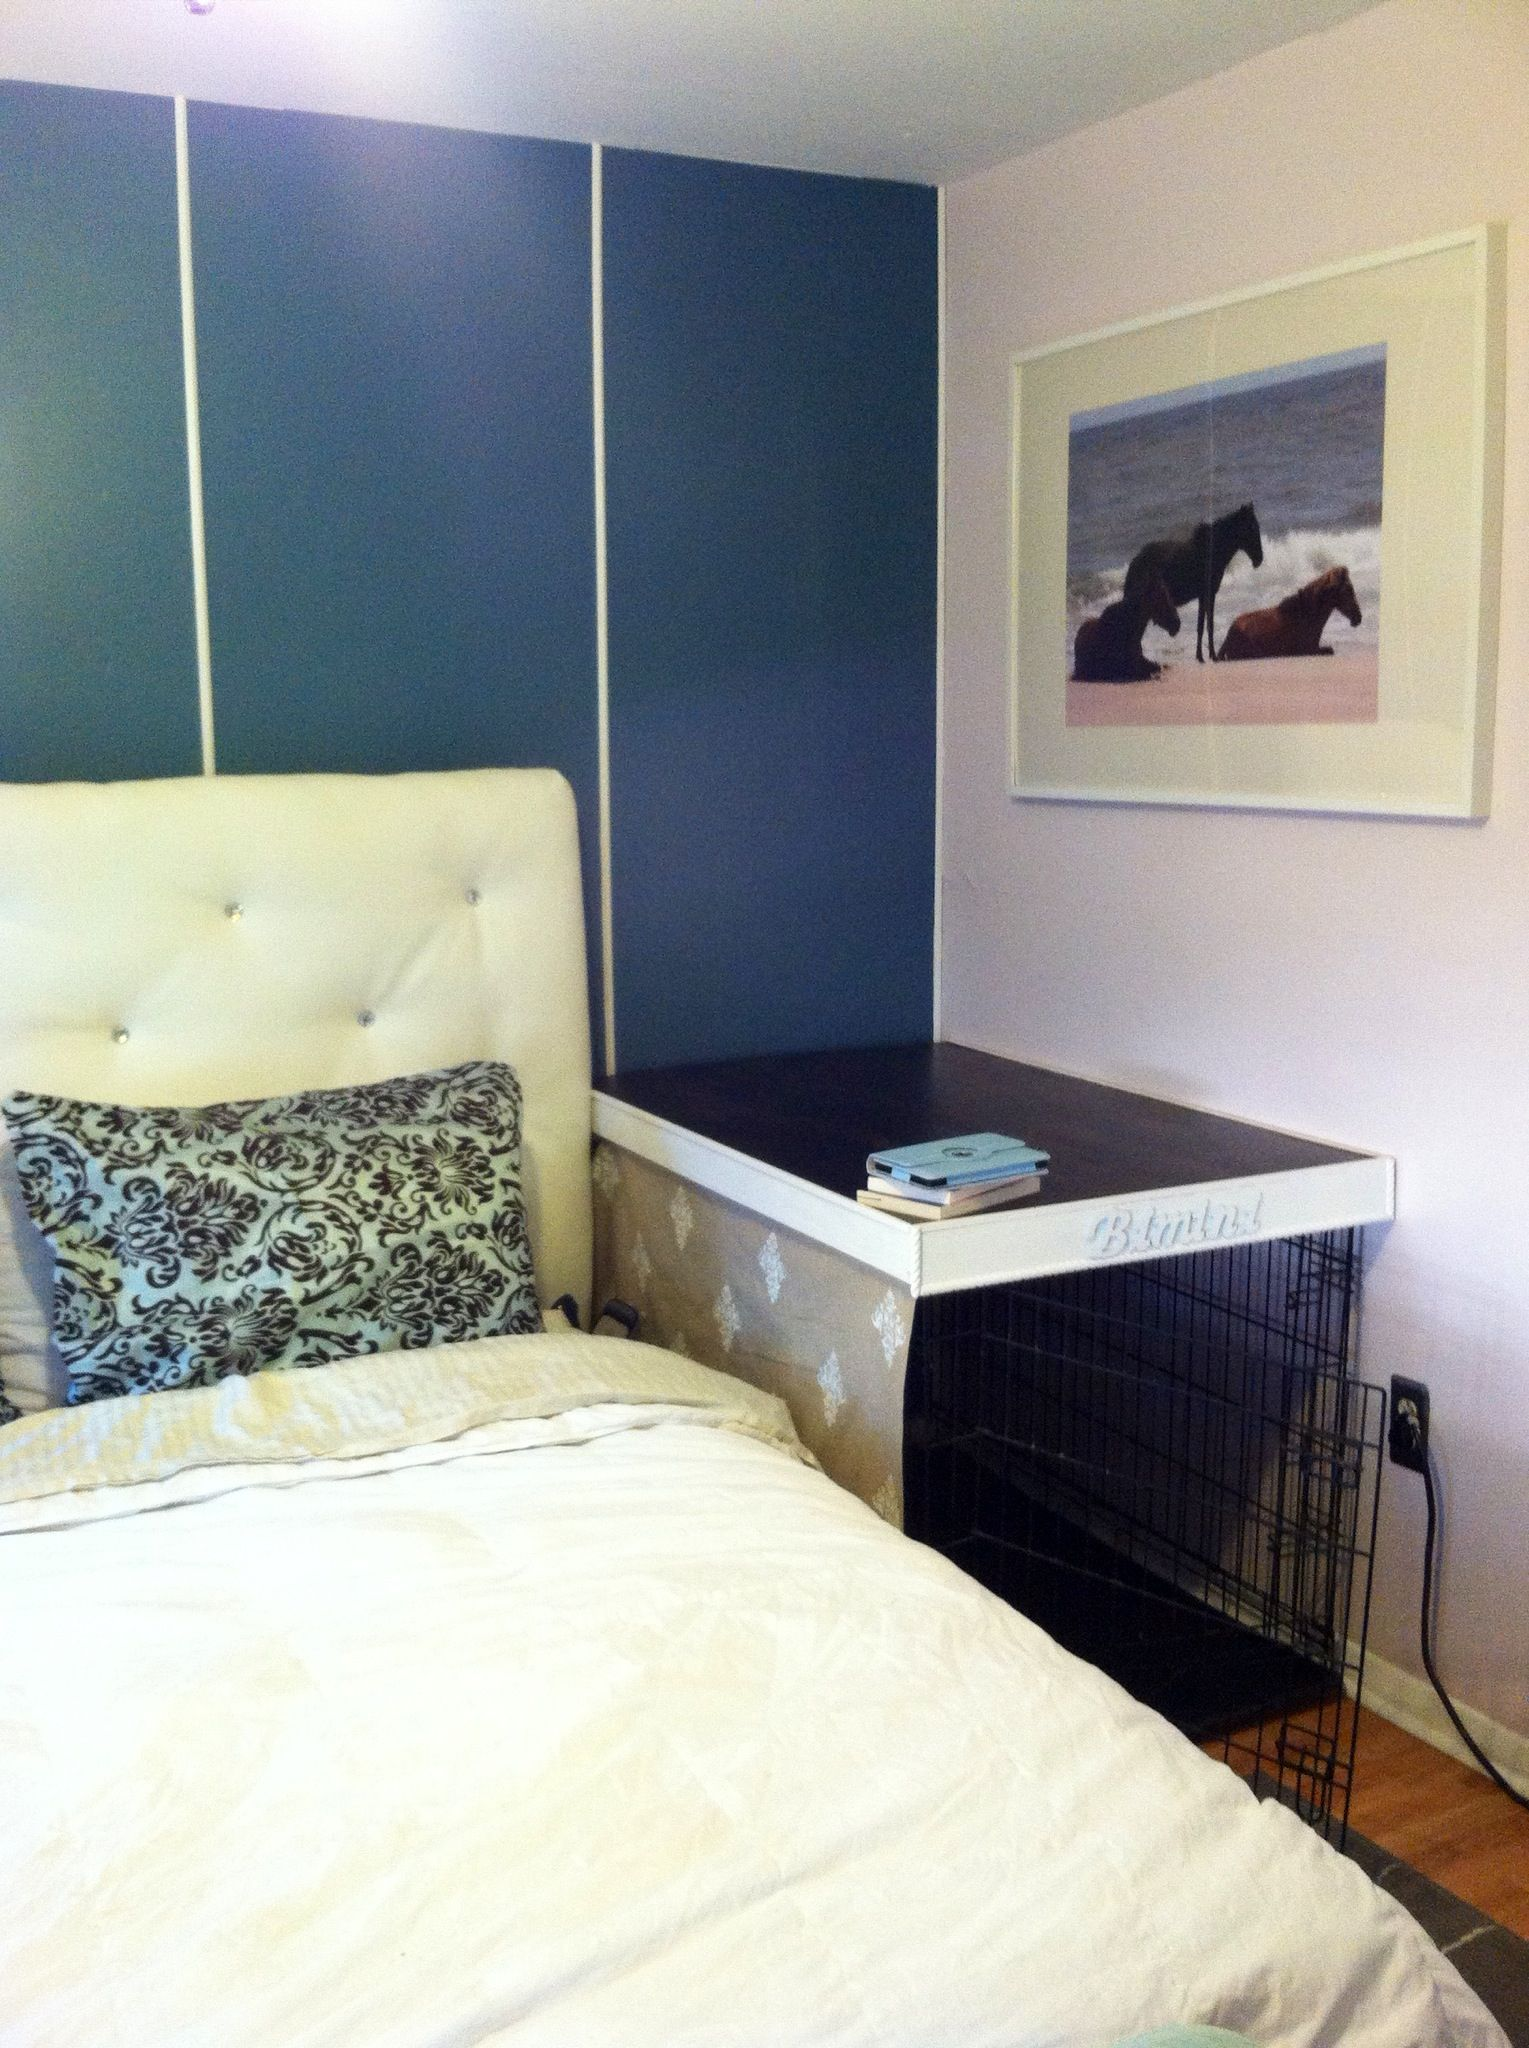 Awesome idea. Turn the dog crate into a nightstand by